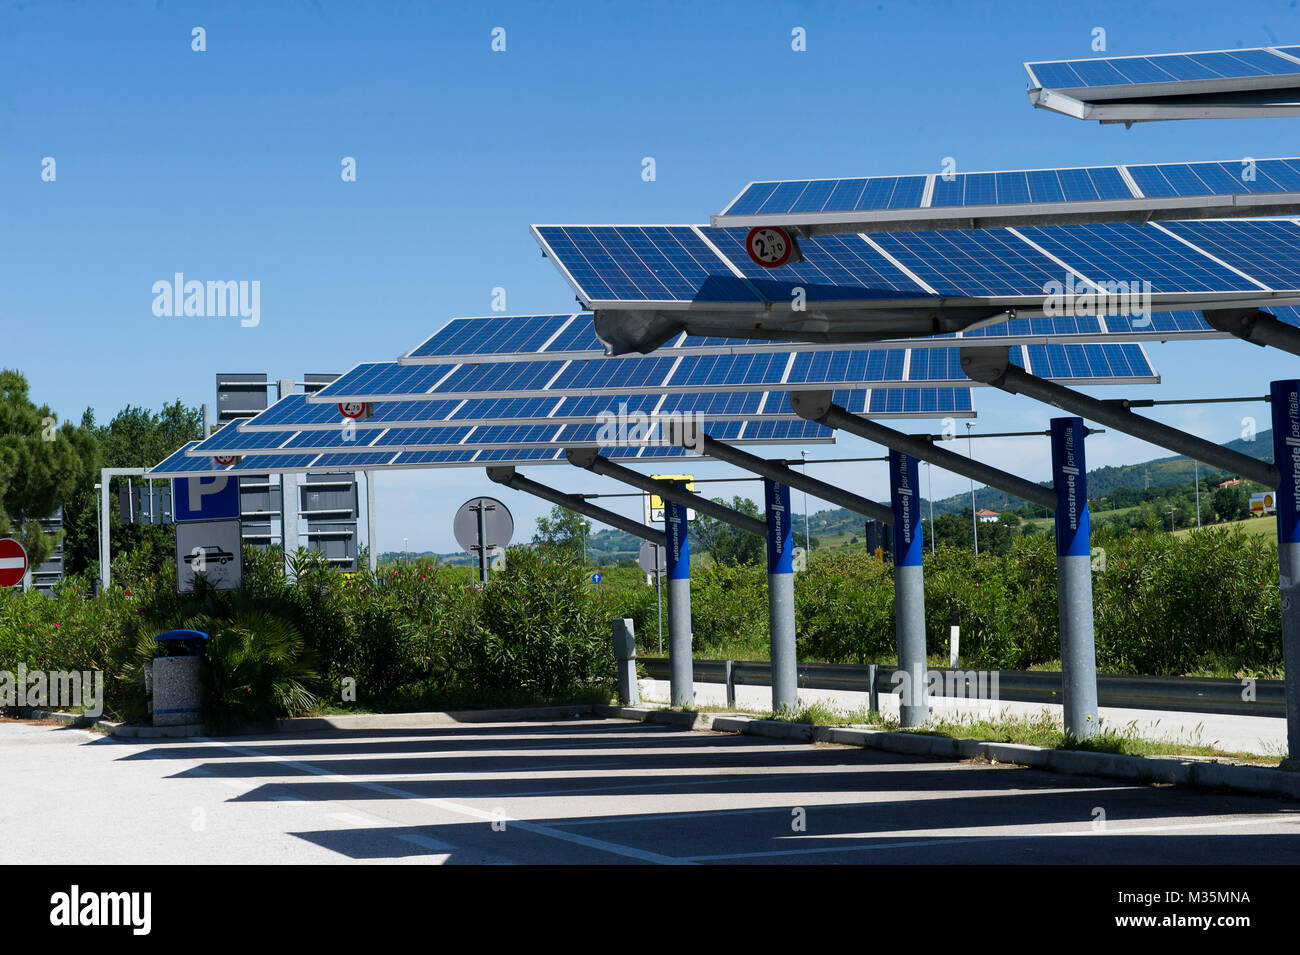 Installed solar panels on the areas of parking lot of the Italian highways - Stock Image